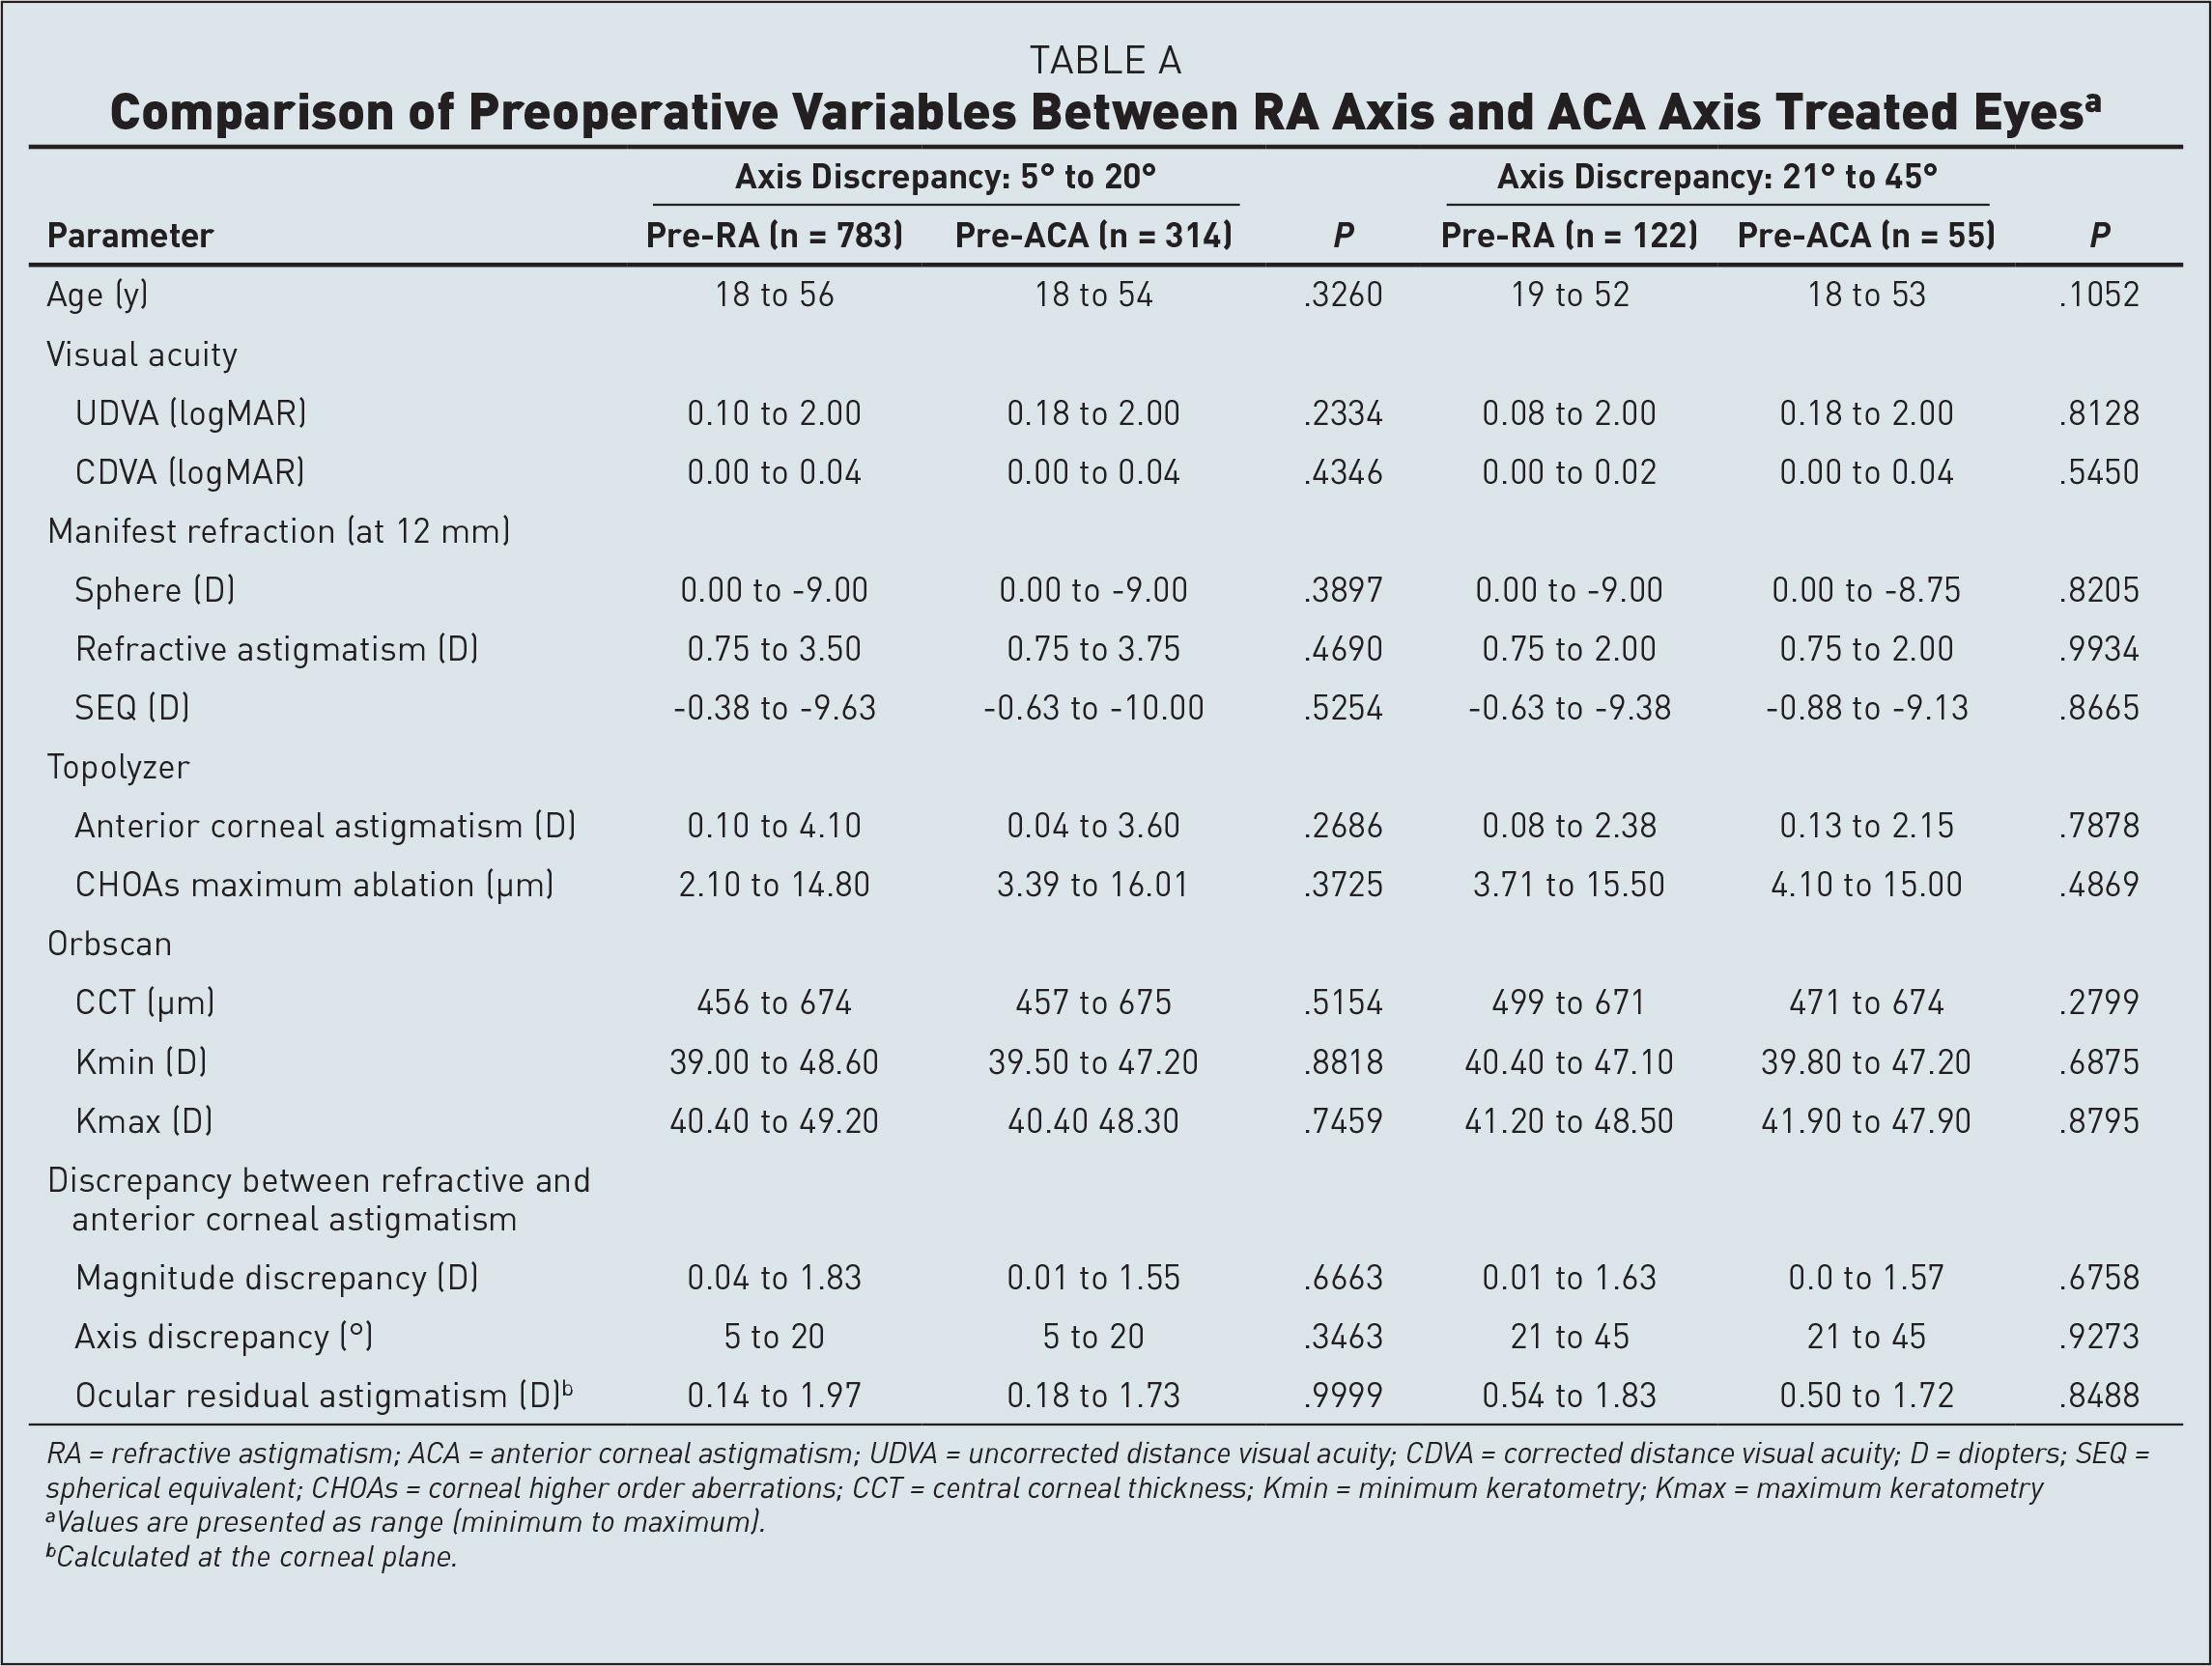 Comparison of Preoperative Variables Between RA Axis and ACA Axis Treated Eyesa